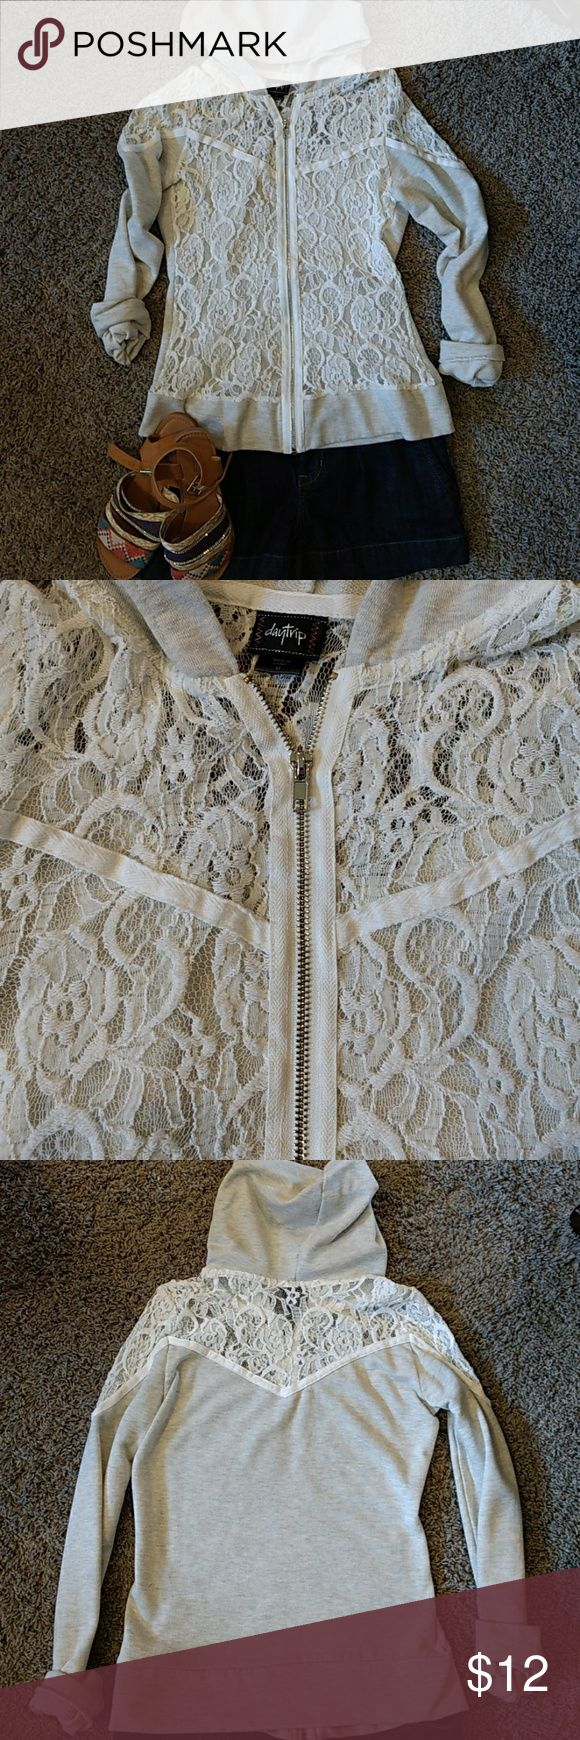 Daytrip lace zip up Cream lace in front and back and arms are comfy Heather Gray. Worn but lots of love left. It's a medium but could also work as a small. Daytrip Tops Sweatshirts & Hoodies